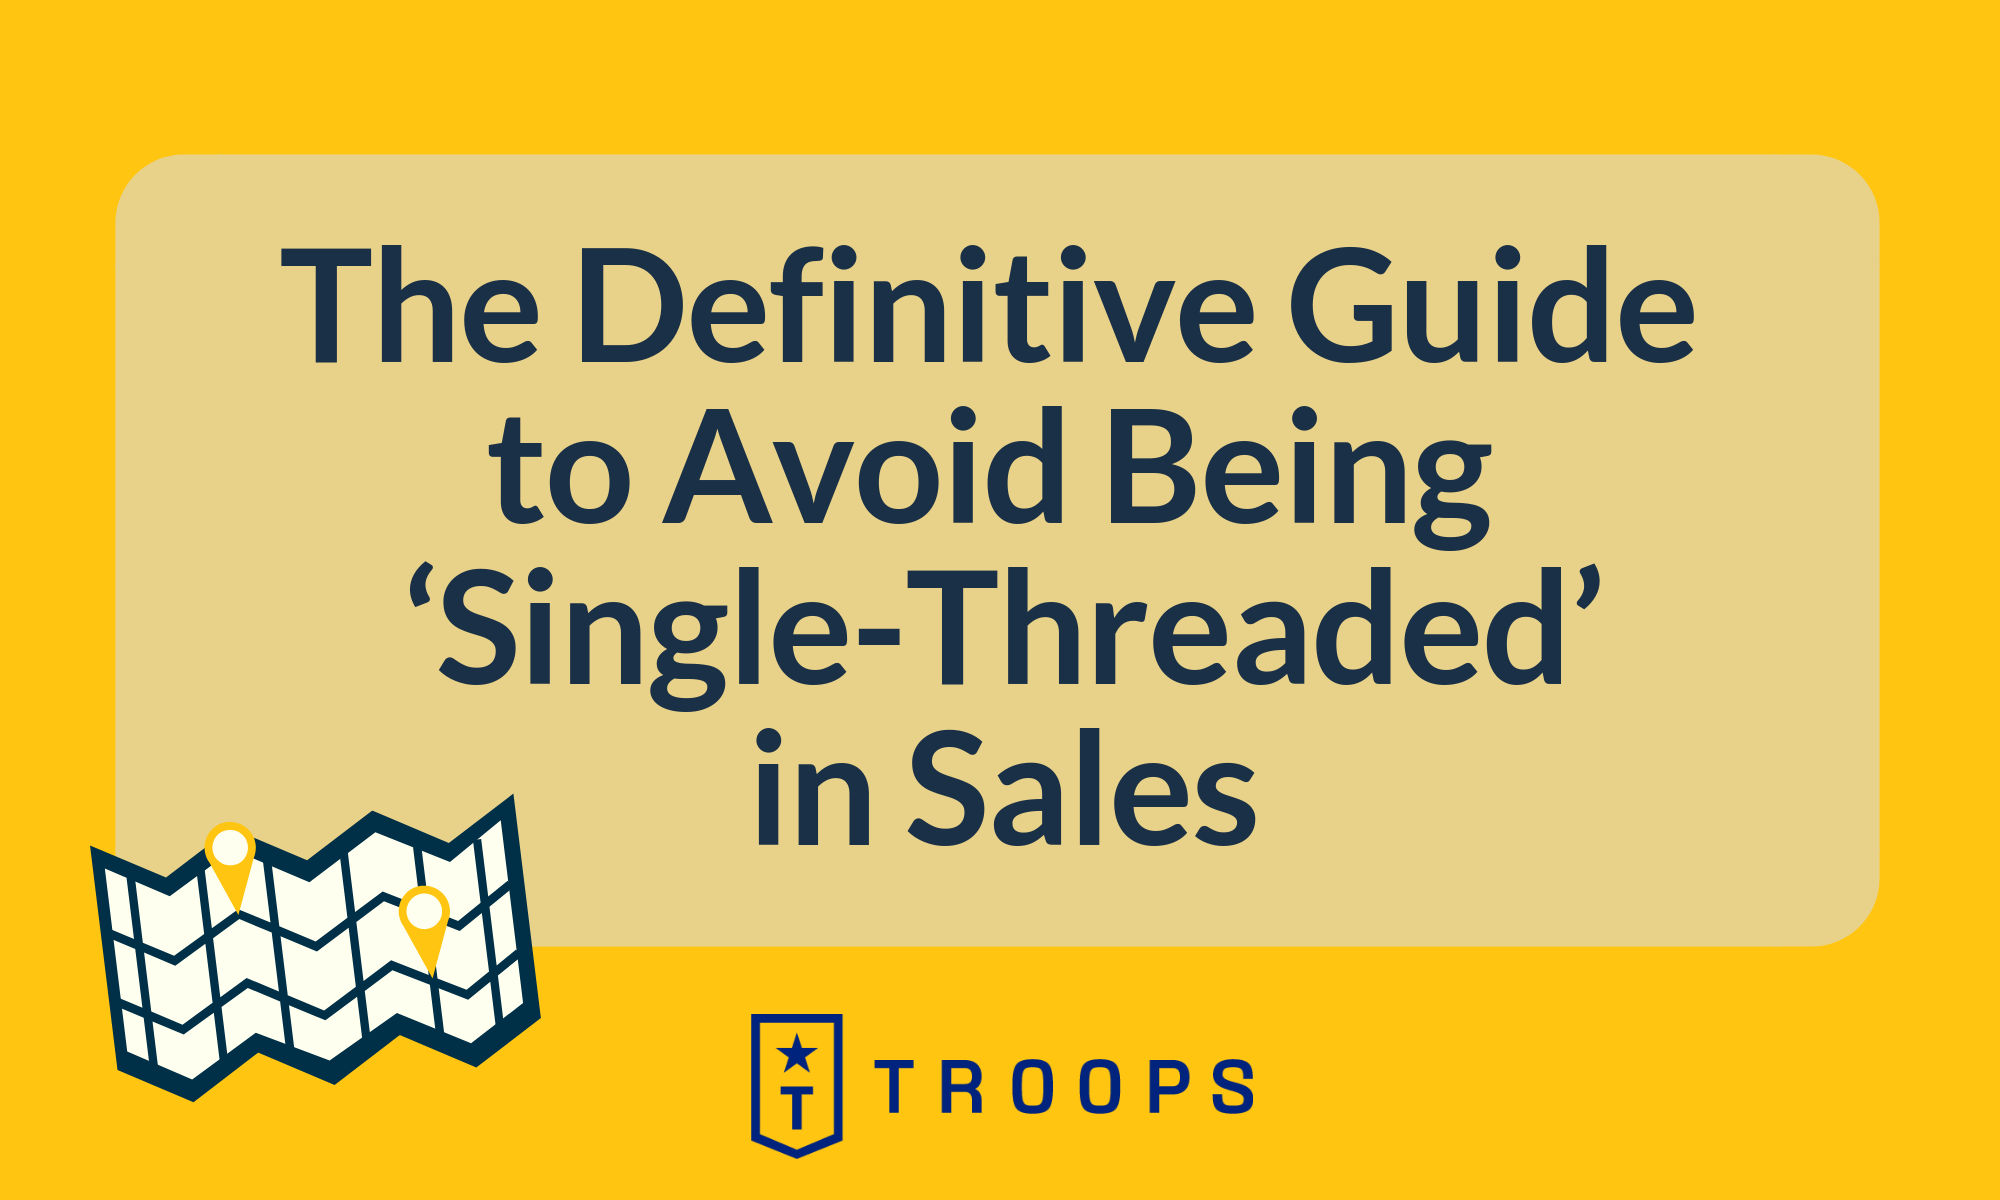 The Definitive Guide to Avoid Being 'Single-Threaded' in Sales